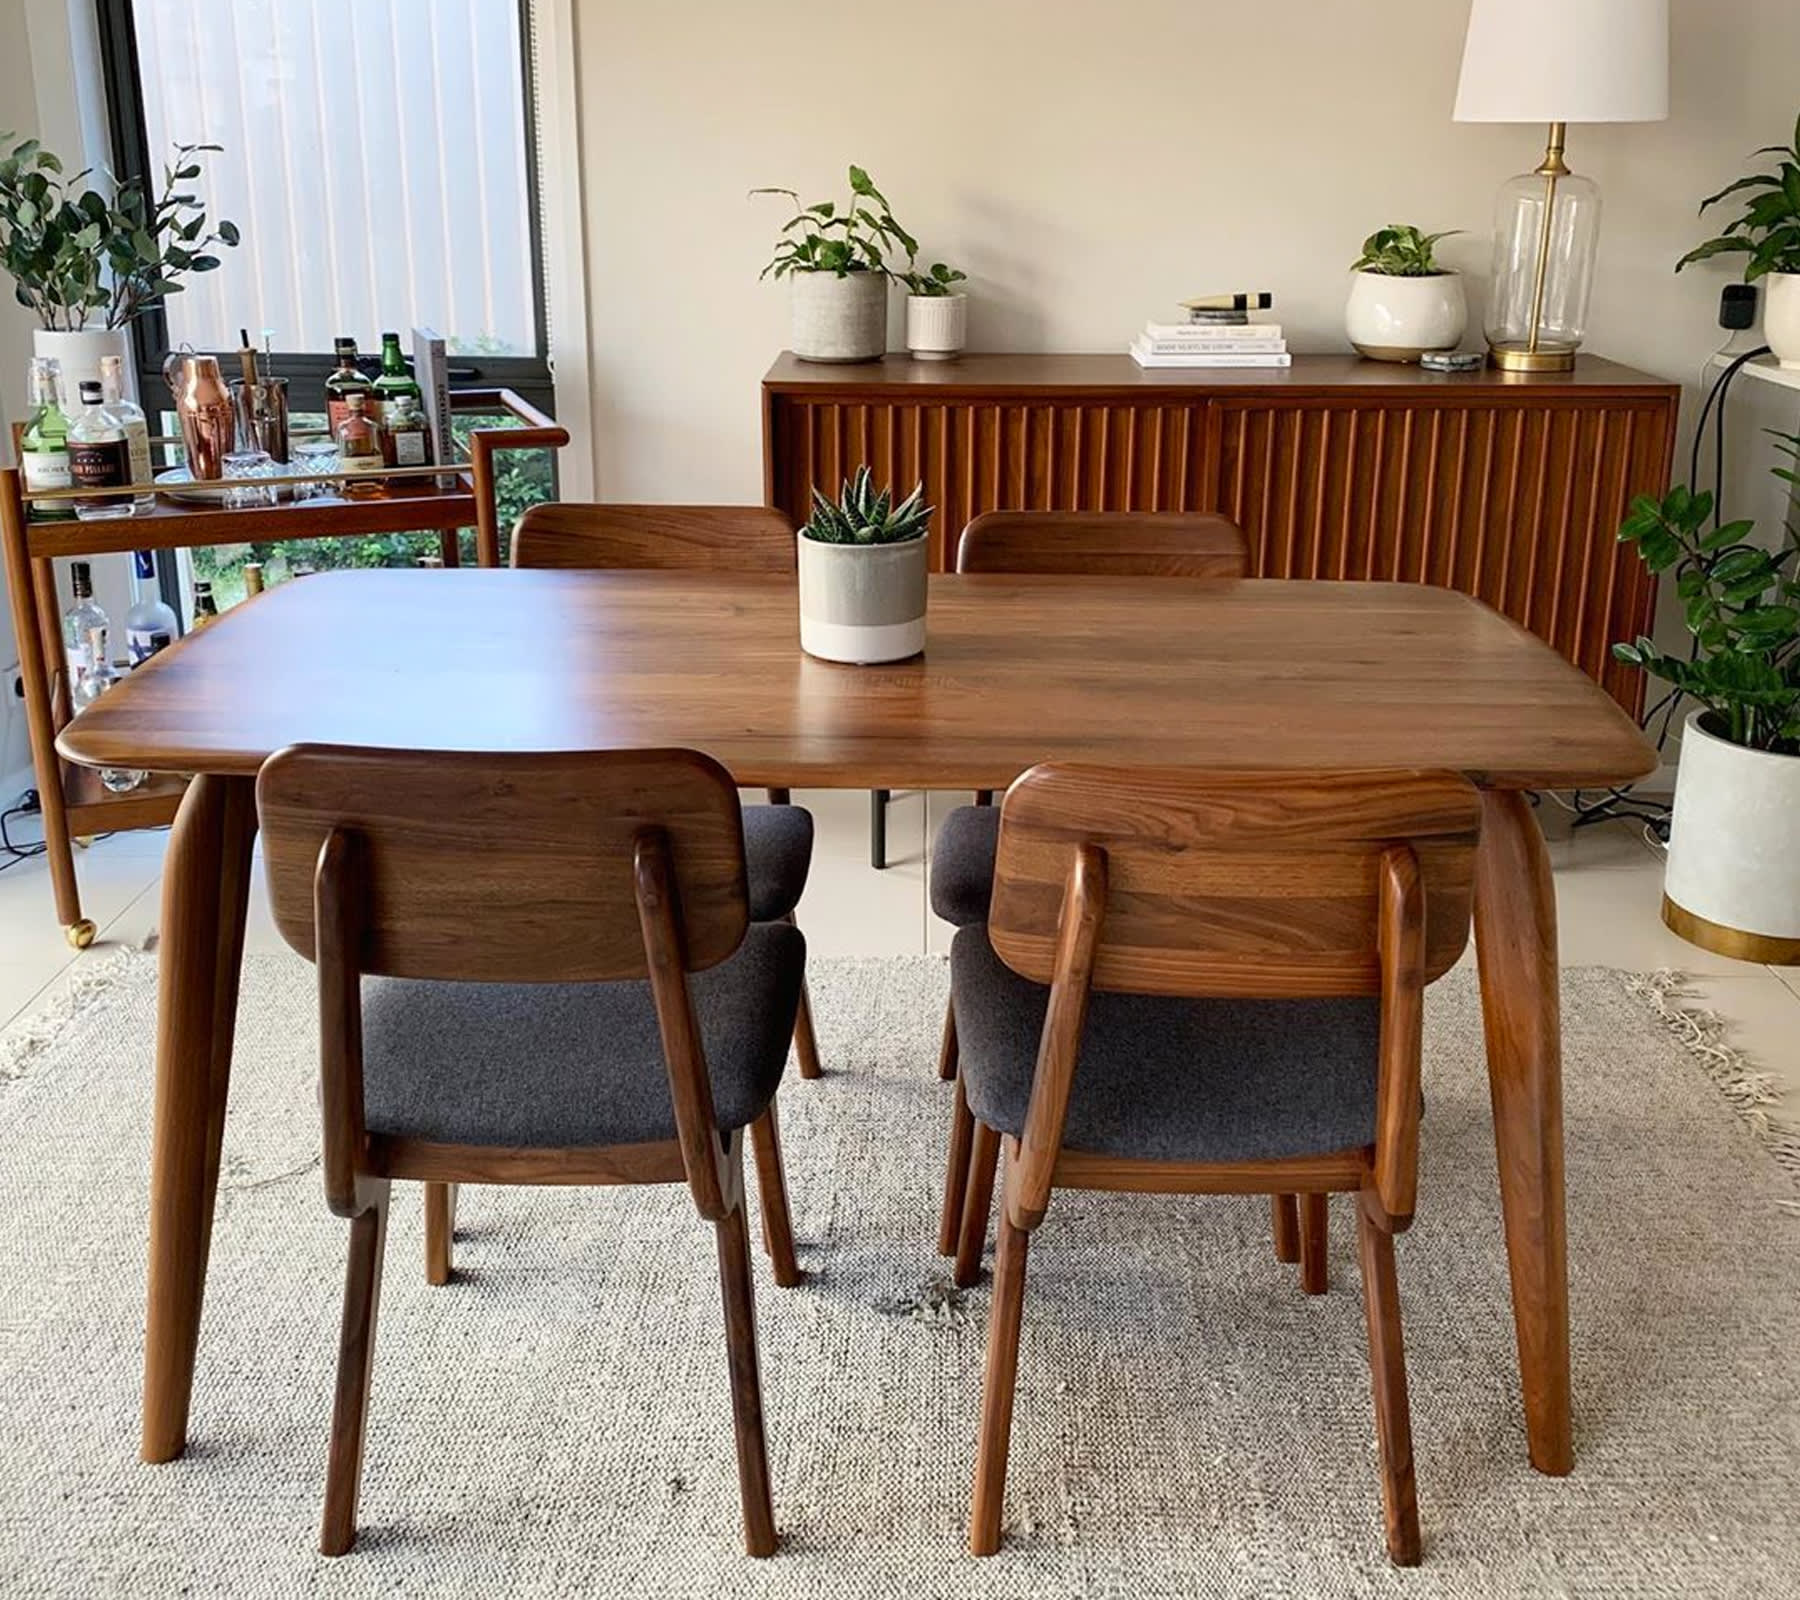 dark wooden dining table and chairs in mid-century modern dining space with bar cart and sideboard